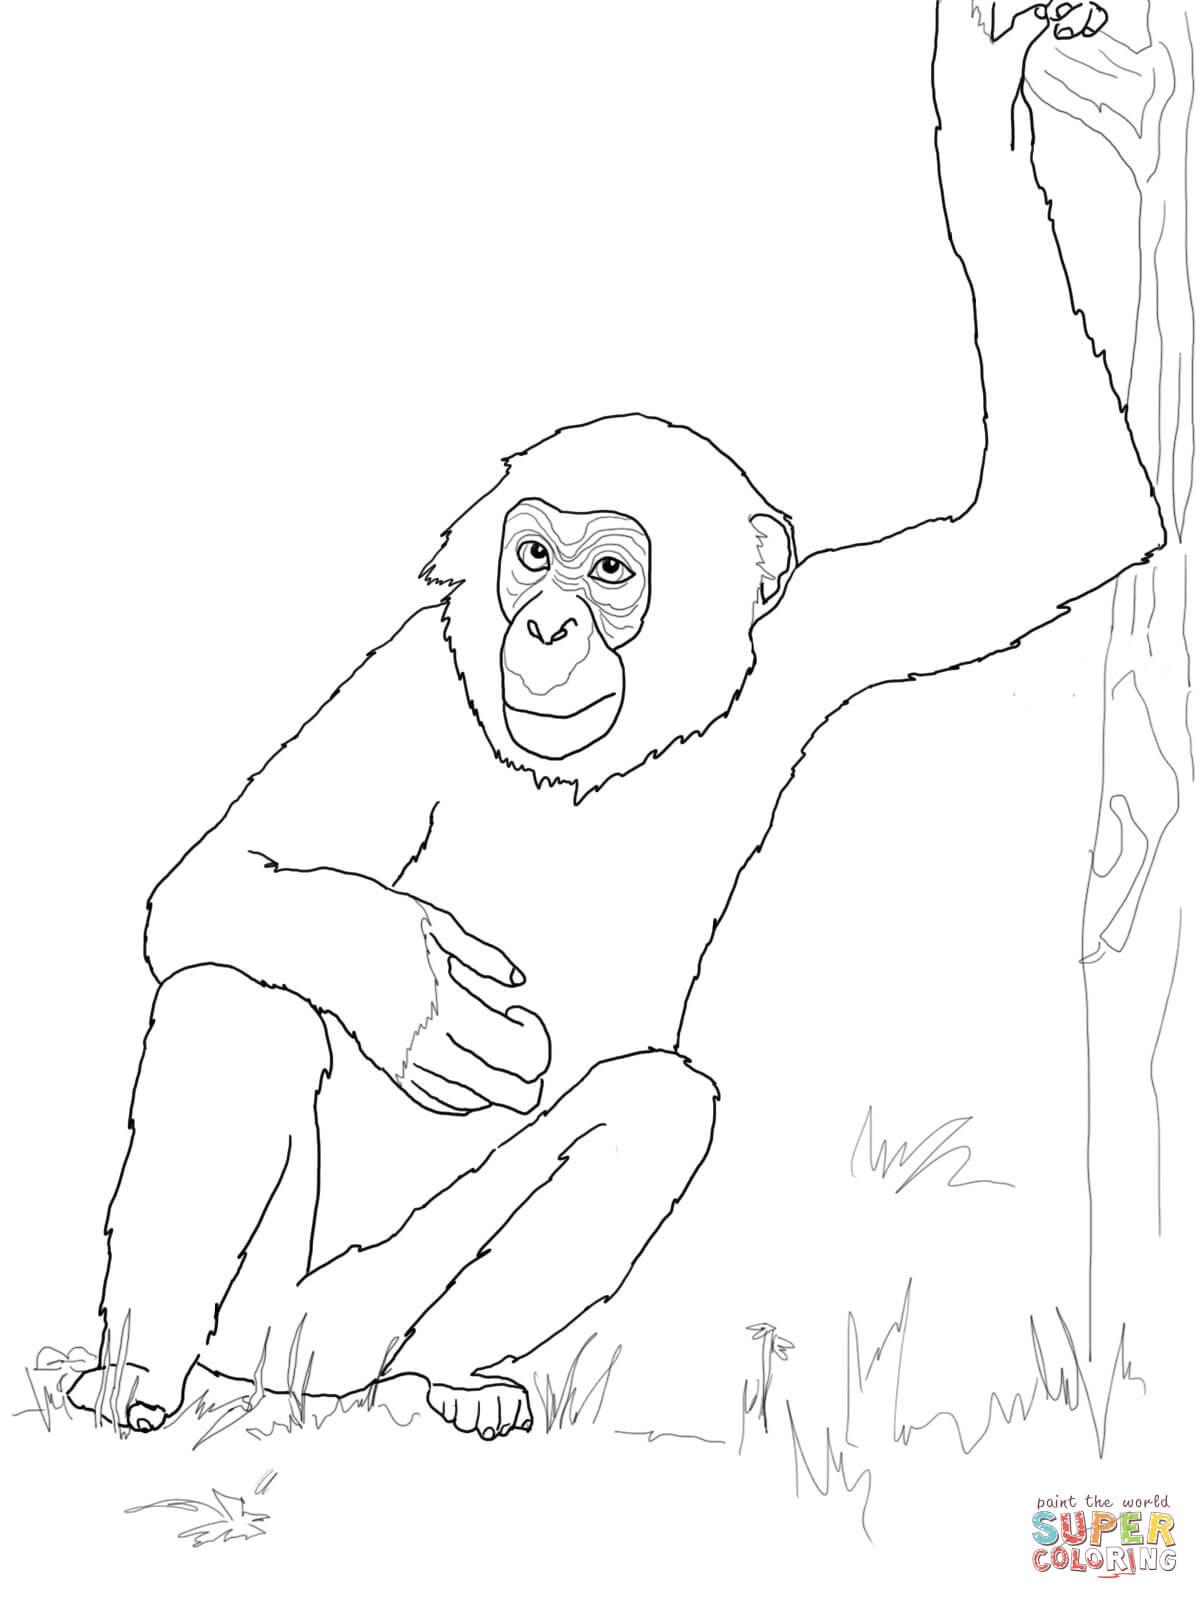 Bonobos clipart clip art library stock Bonobo Chimpanzee coloring page | Free Printable Coloring Pages ... clip art library stock